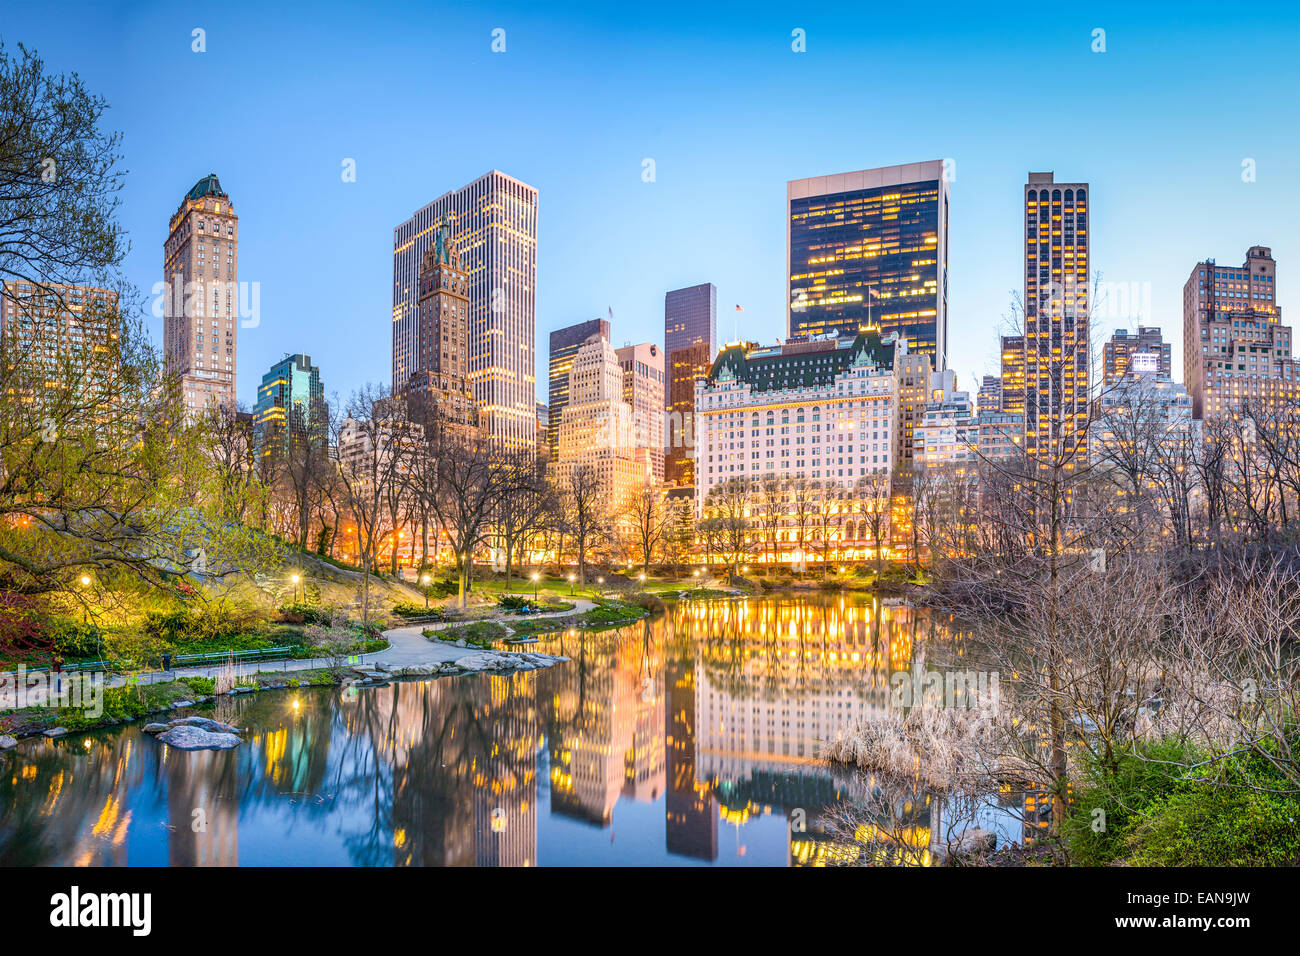 New York City, USA Manhattan Stadtbild von der Lagune im Central Park. Stockbild